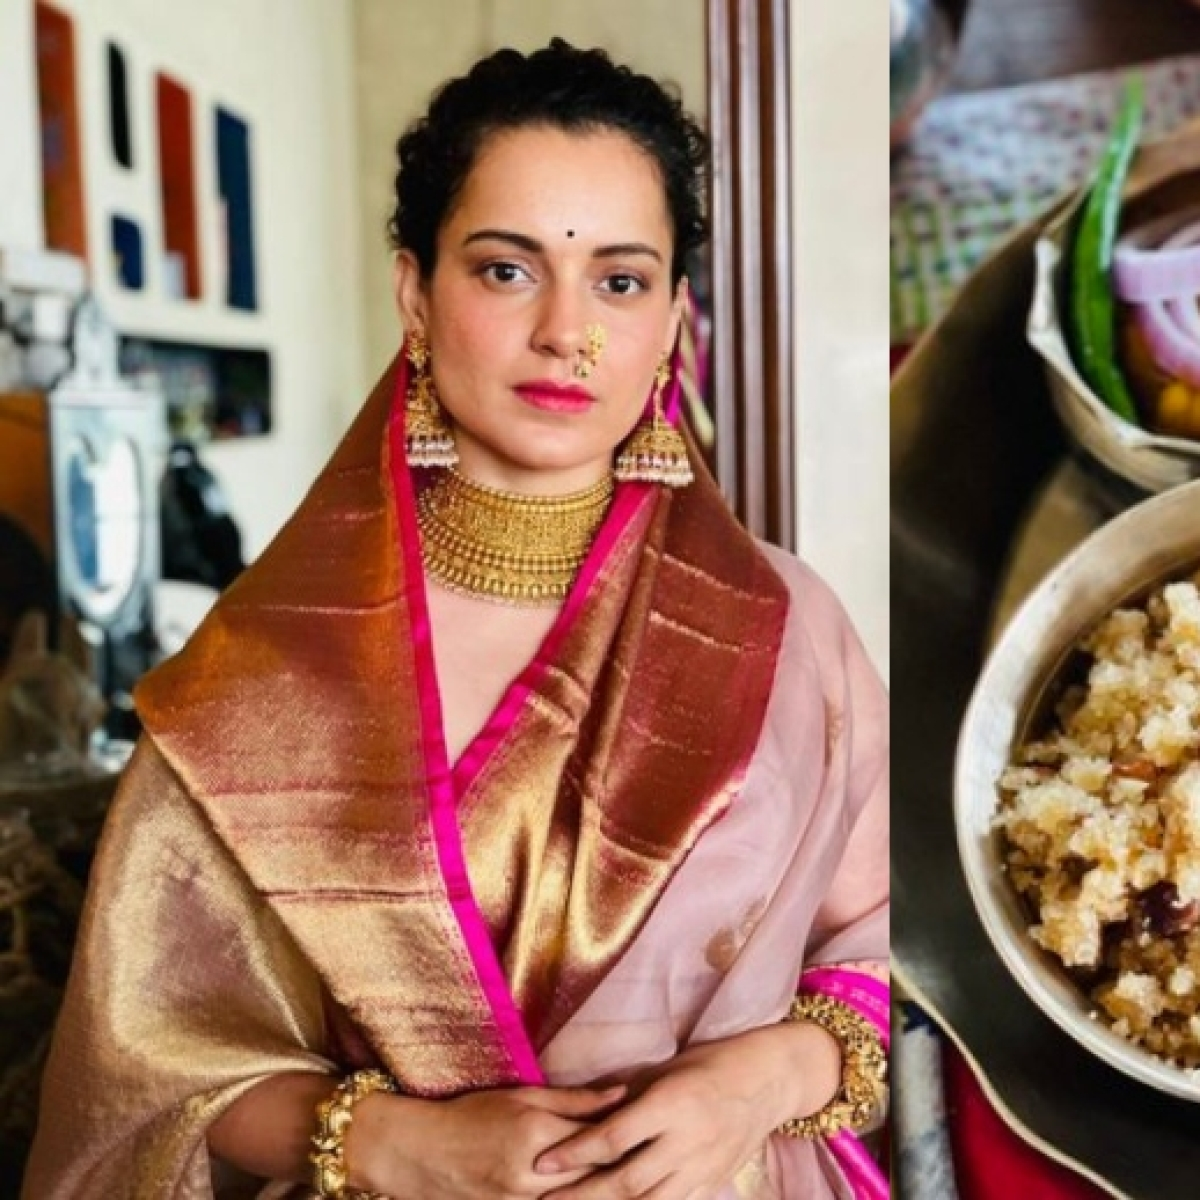 Kangana Ranaut reacts to being trolled for pic of Durga Ashtami's 'prasad' with onion, says 'Hinduism is not rigid like other religions'